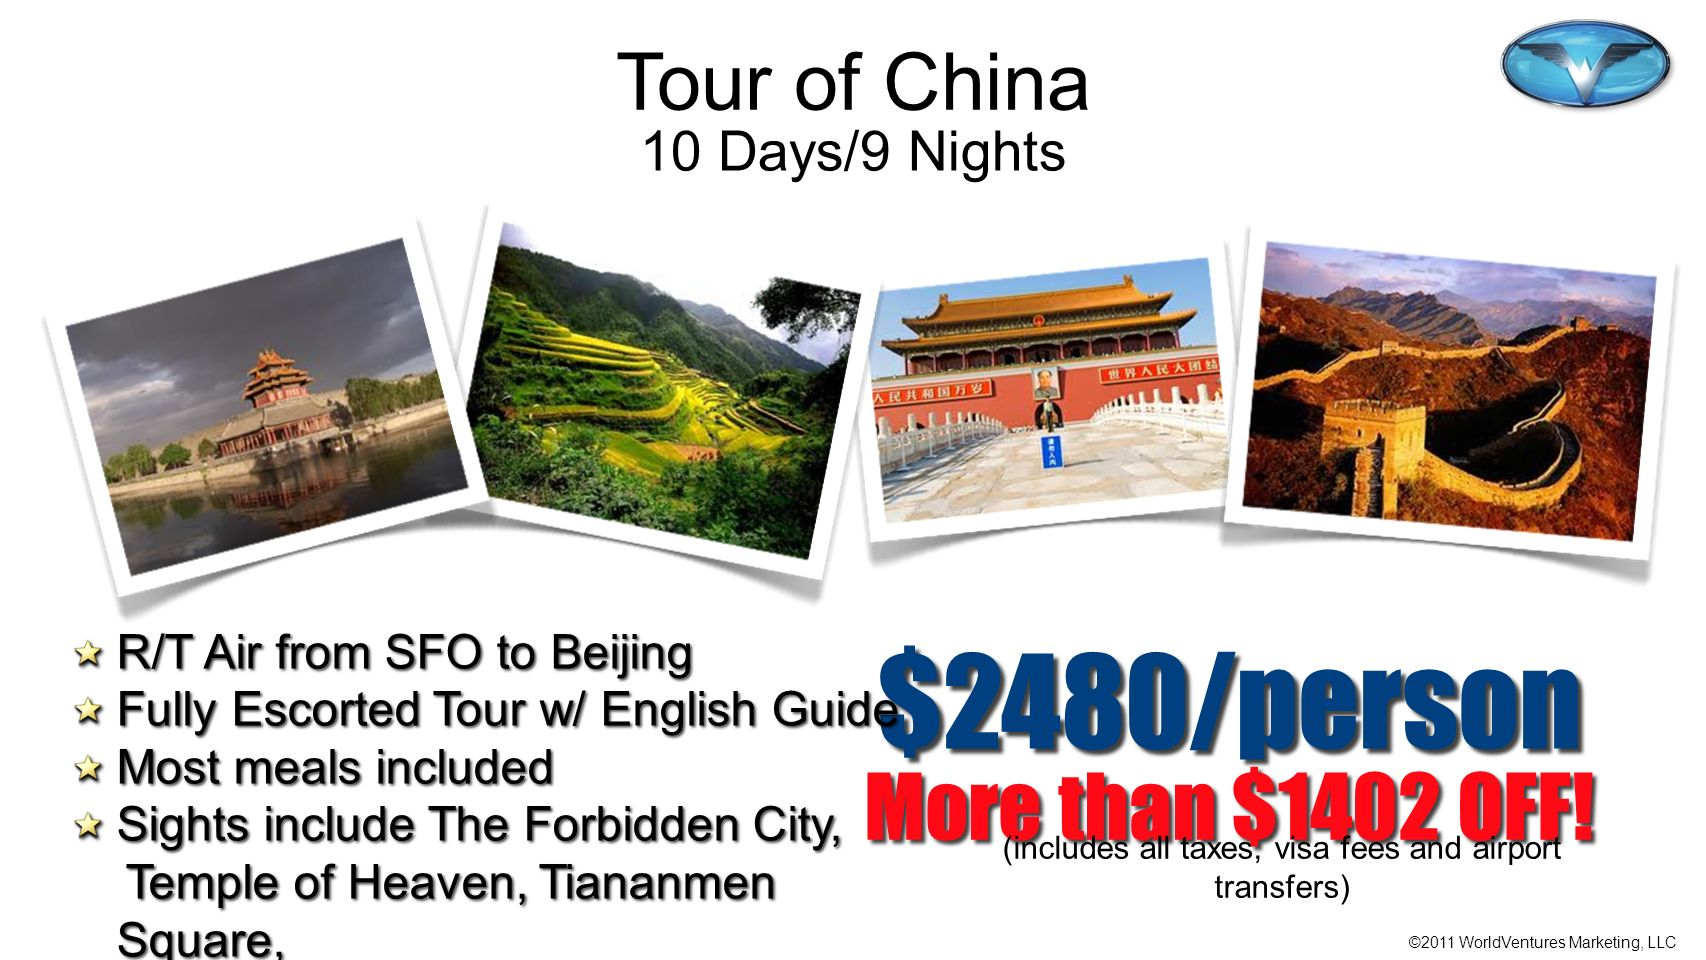 (includes all taxes, visa fees and airport transfers)